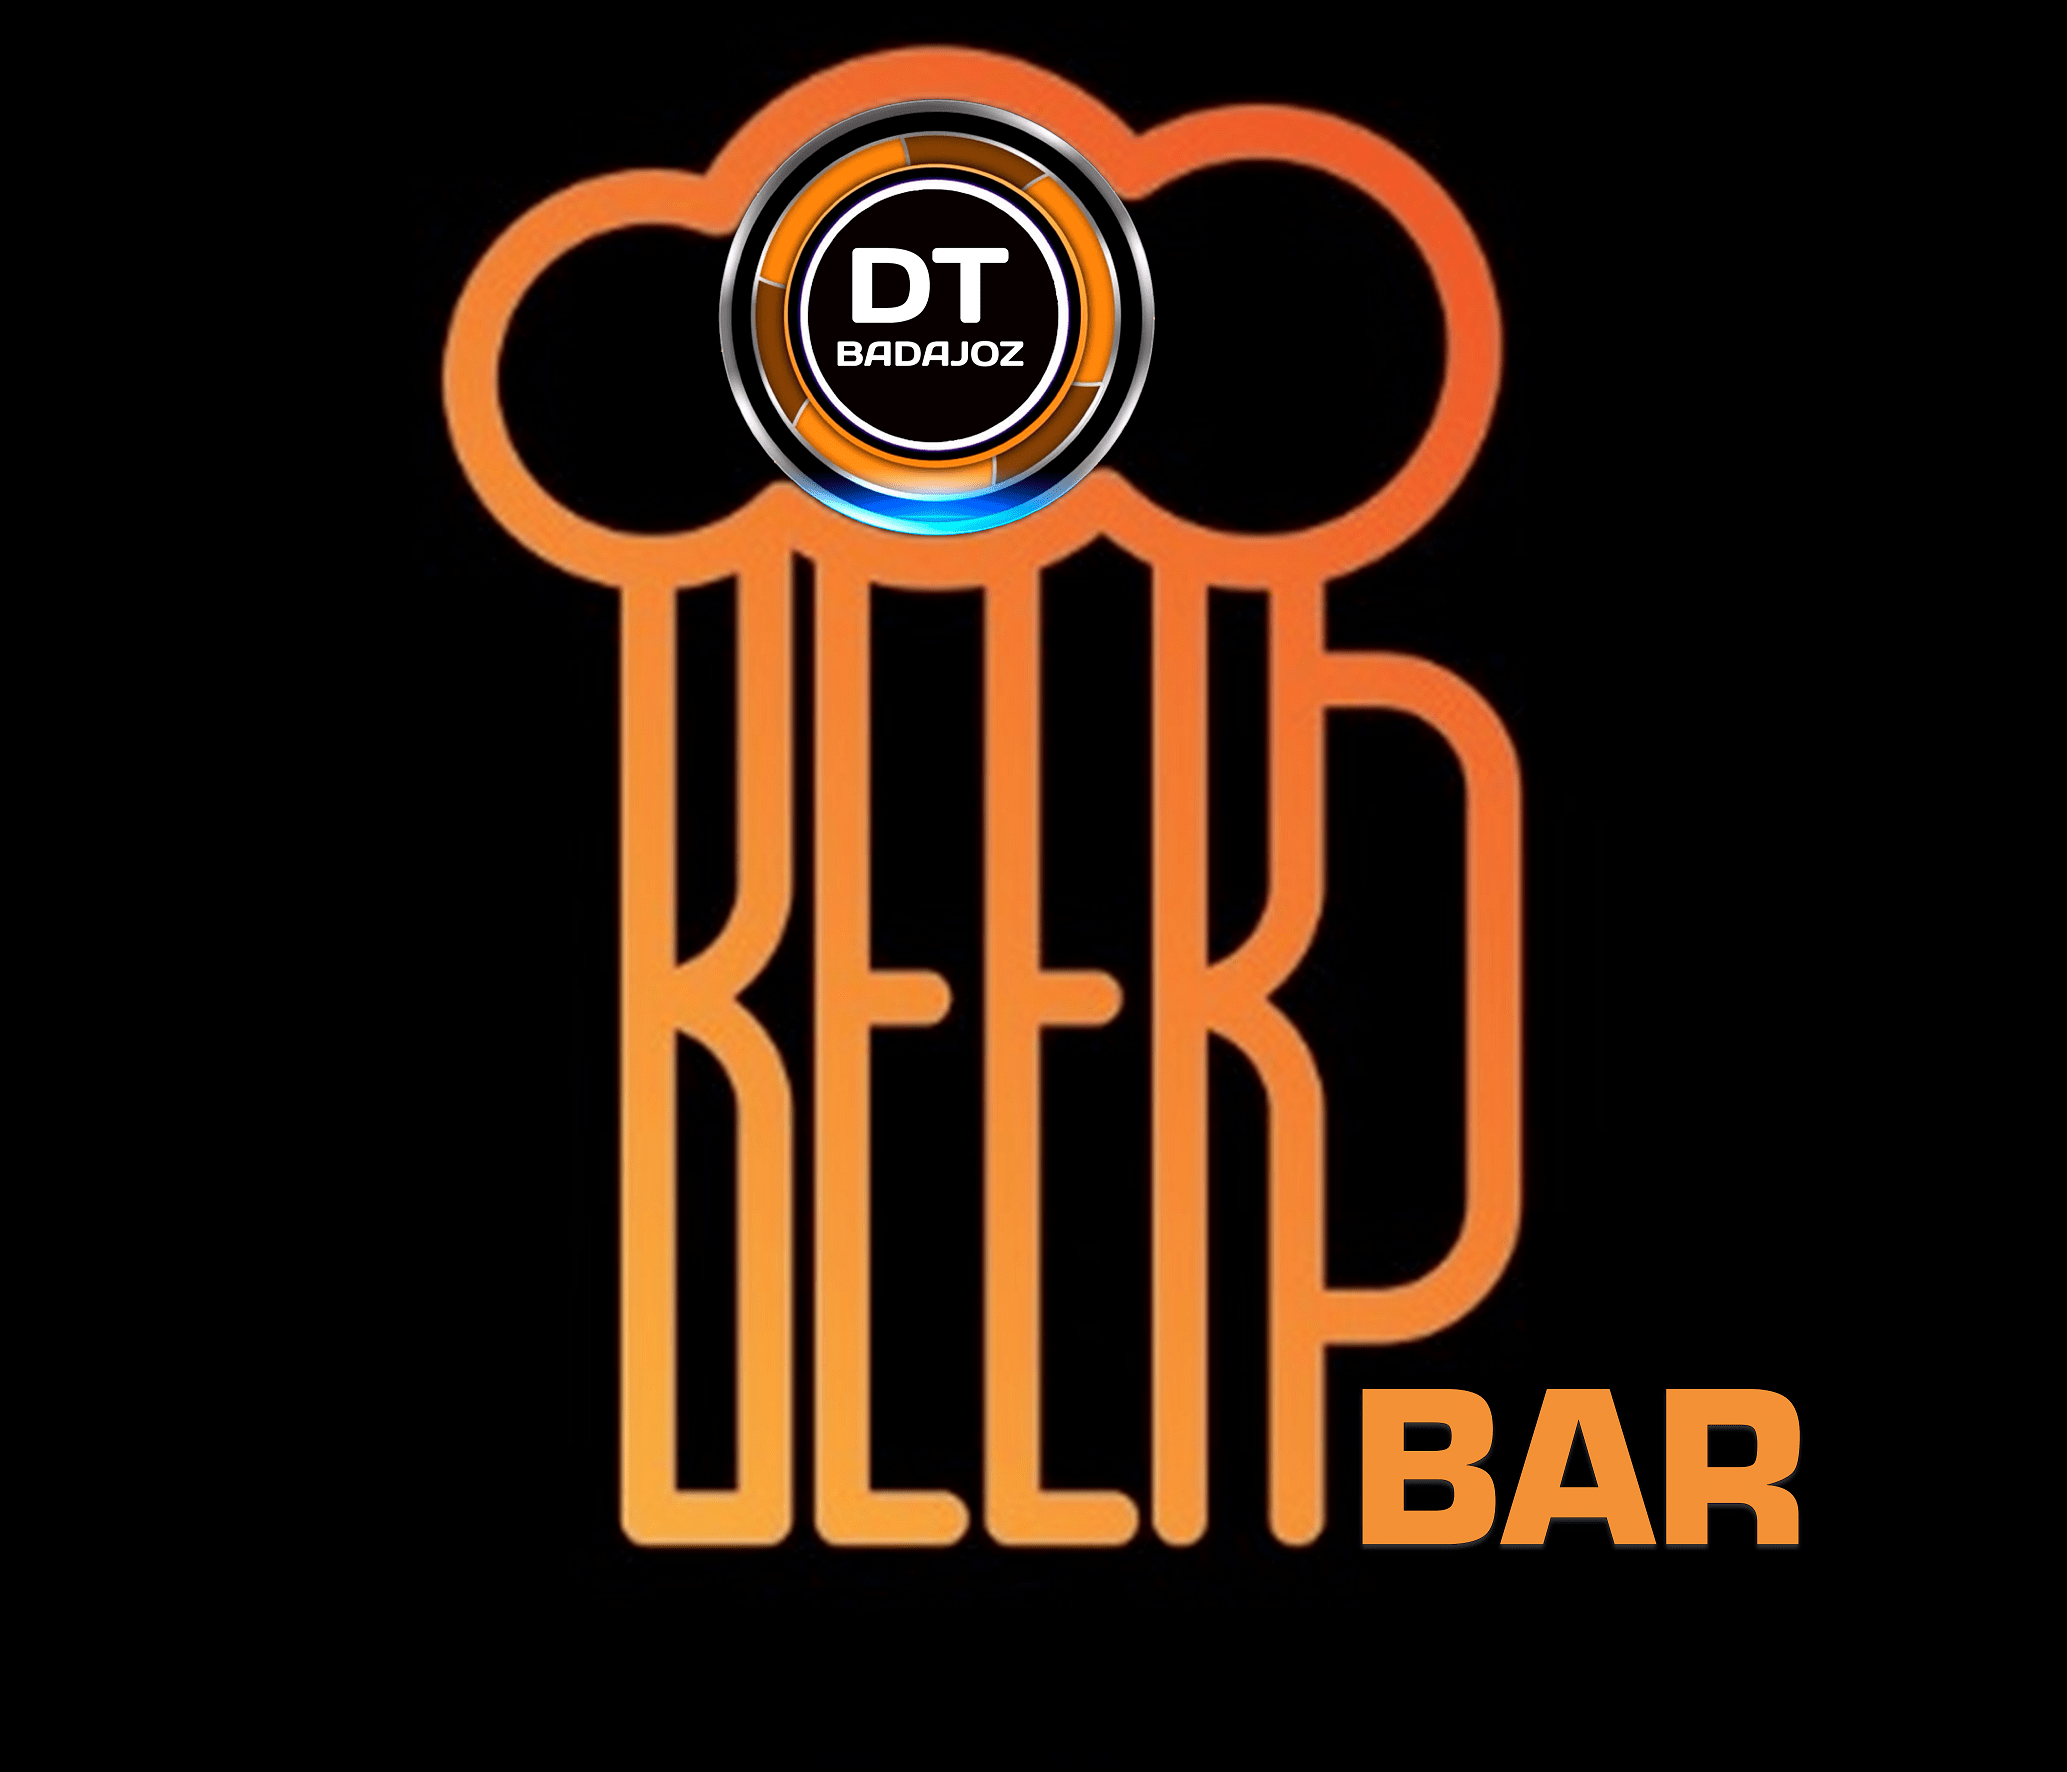 Logo Catering - DT Beer Bar